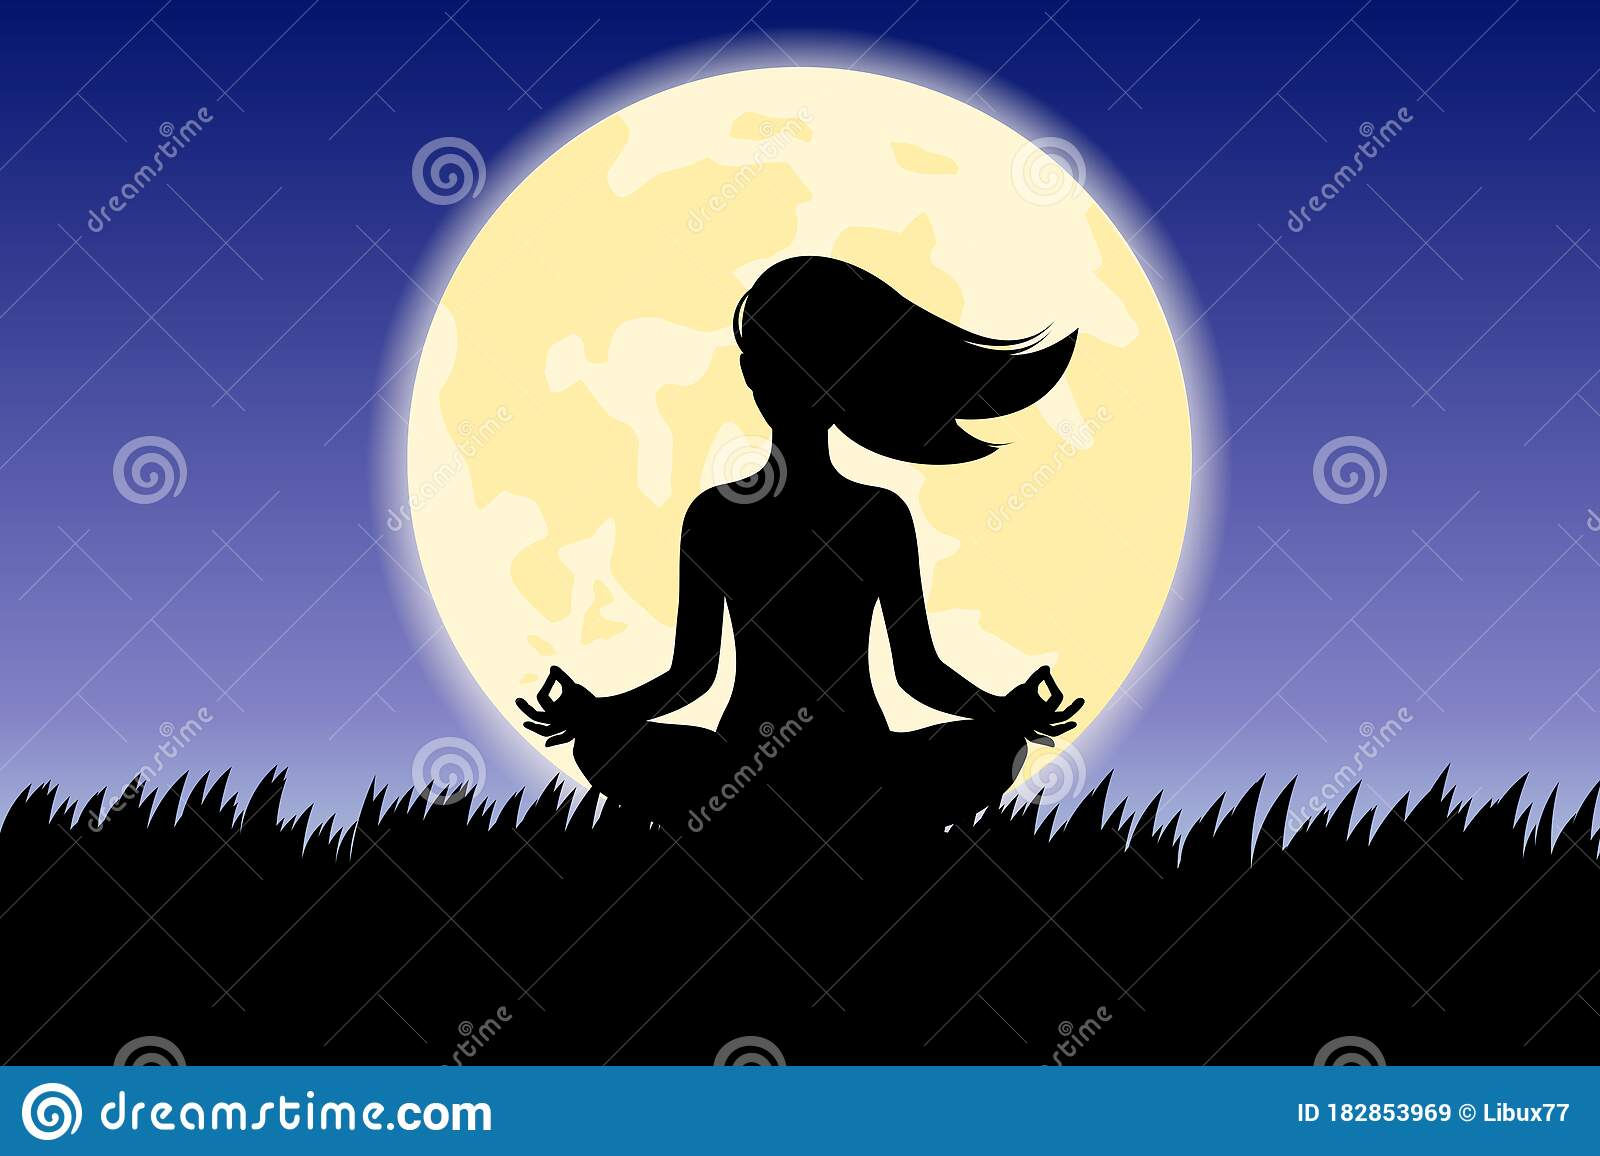 Silhouette Of Woman Doing Yoga Lotus Pose Outdoor In Front Of Full Moon Vector Stock Vector Illustration Of Evening Fitness 182853969